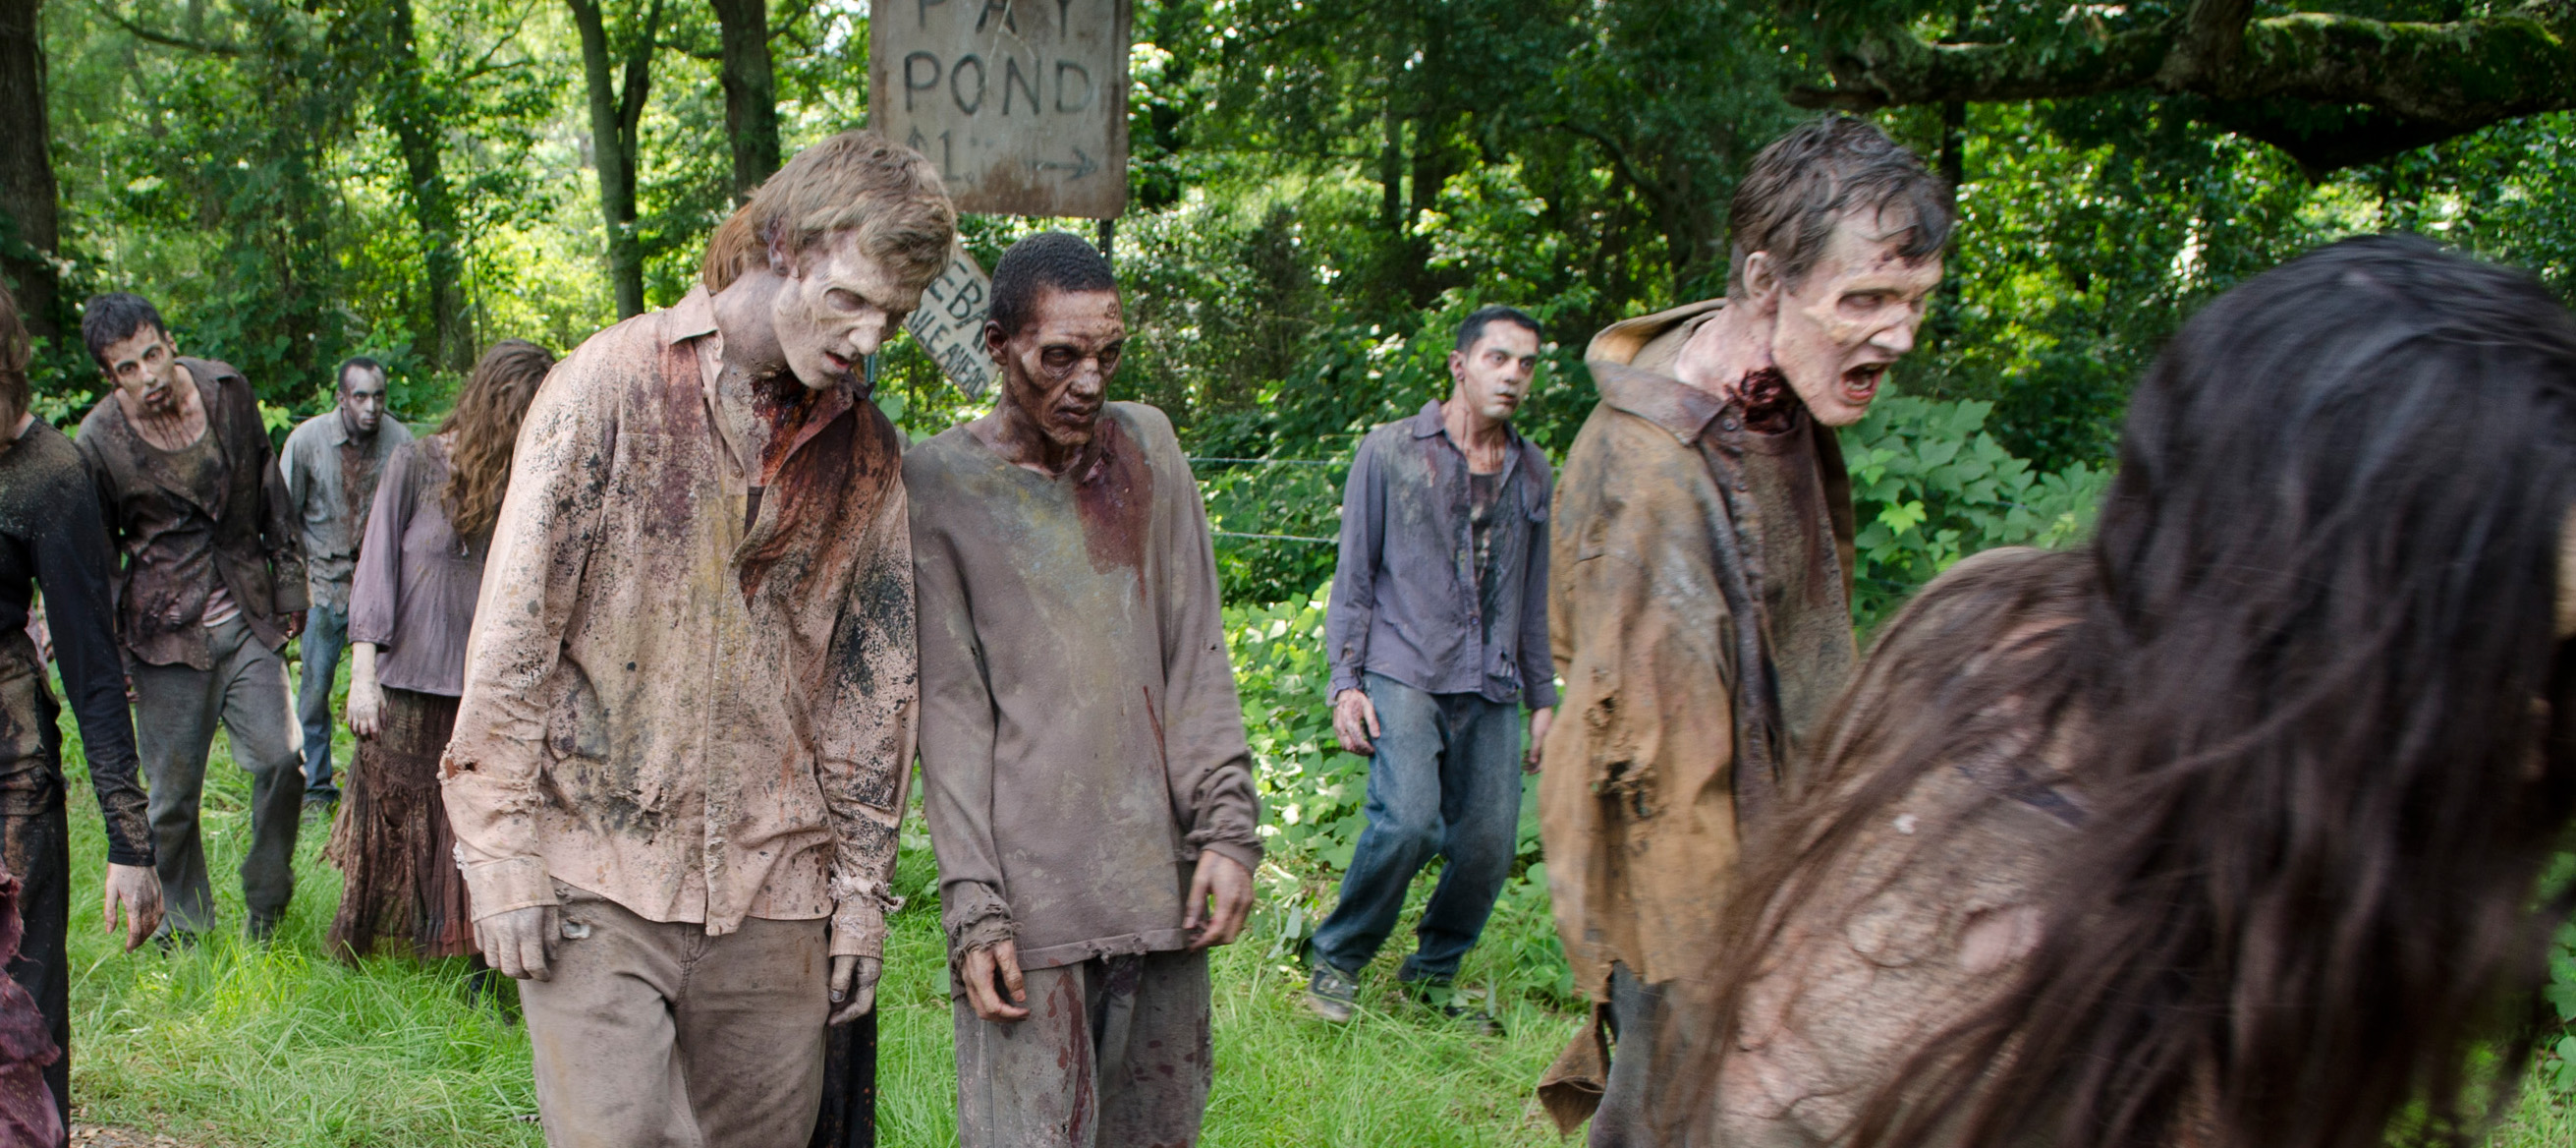 Por dentro de The Walking Dead: Elenco e produtores comentam o episódio S04E06 -